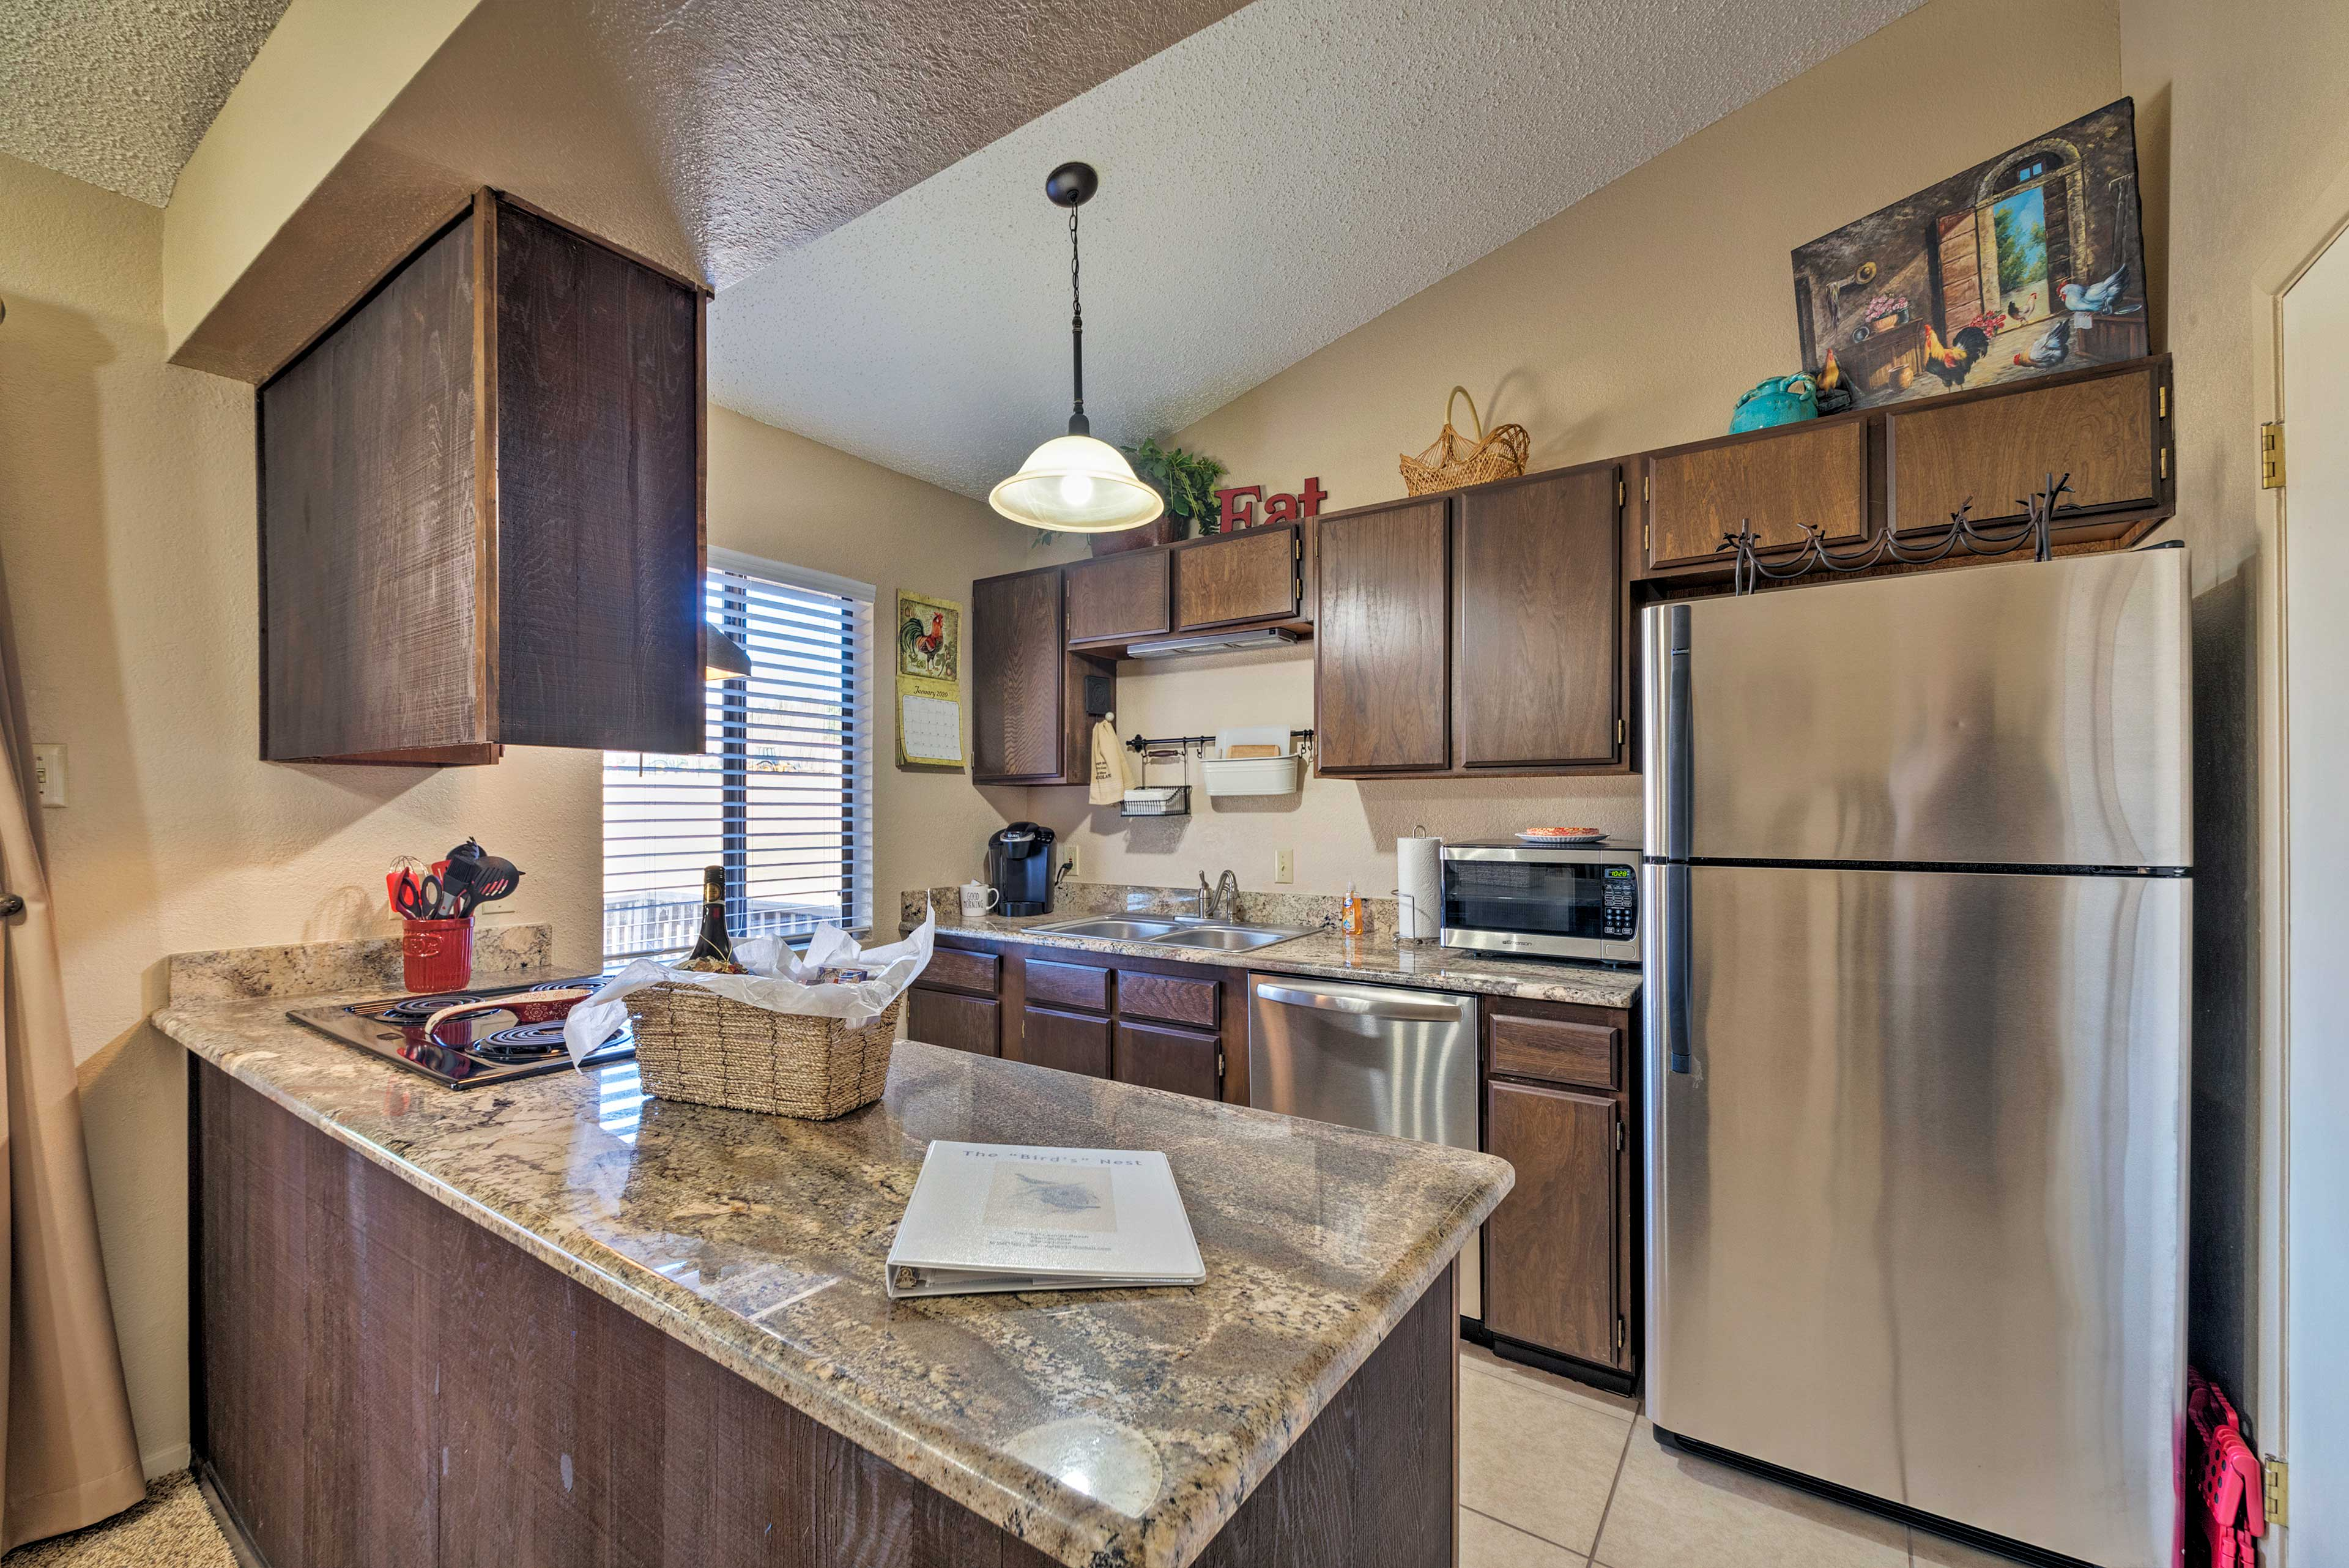 This vacation rental is ideal for your next family southwestern getaway!